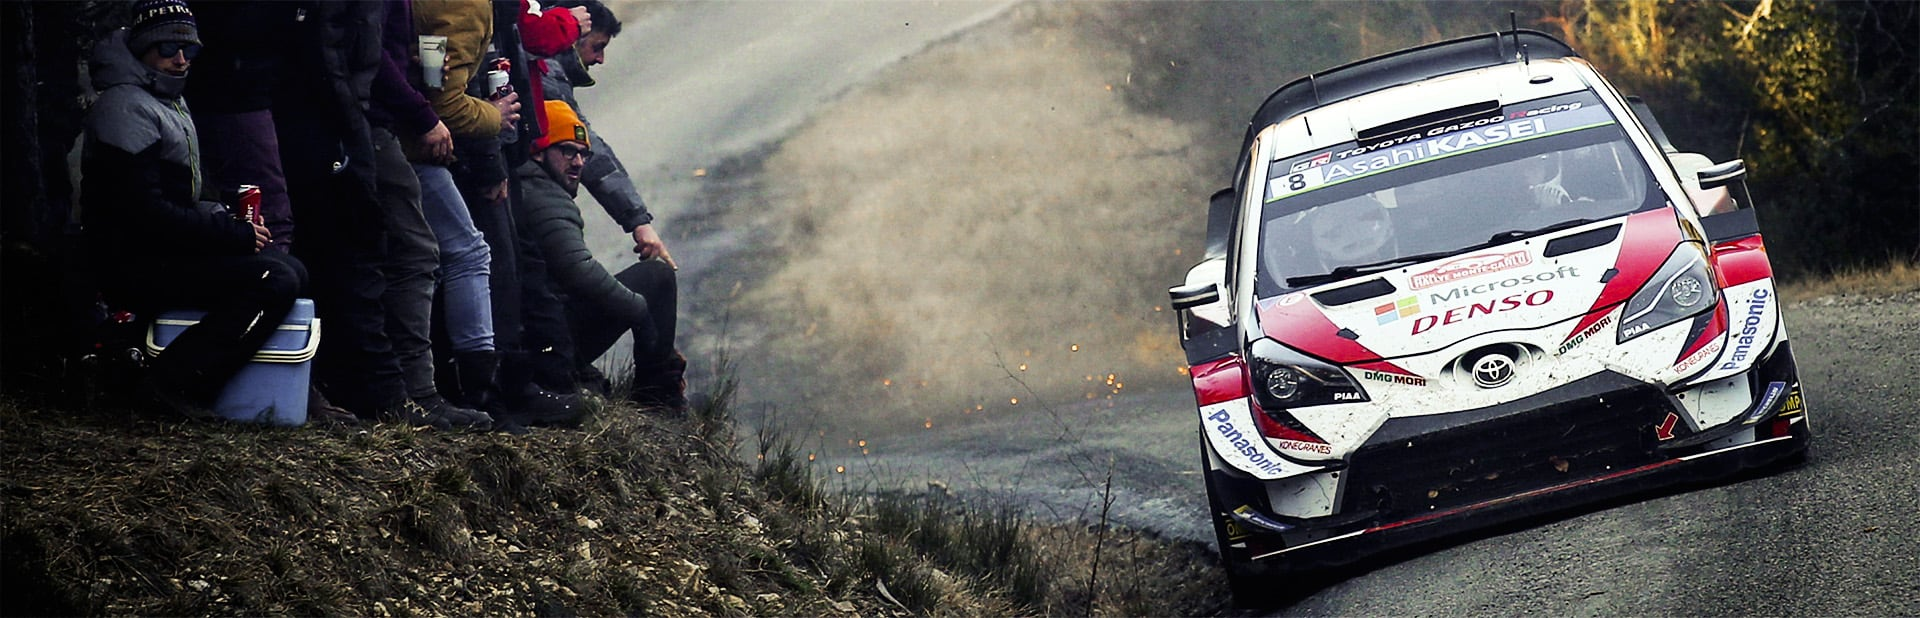 Rallye Monte-Carlo: Day 4 Tänak charges back to climb onto the podium in Monte Carlo